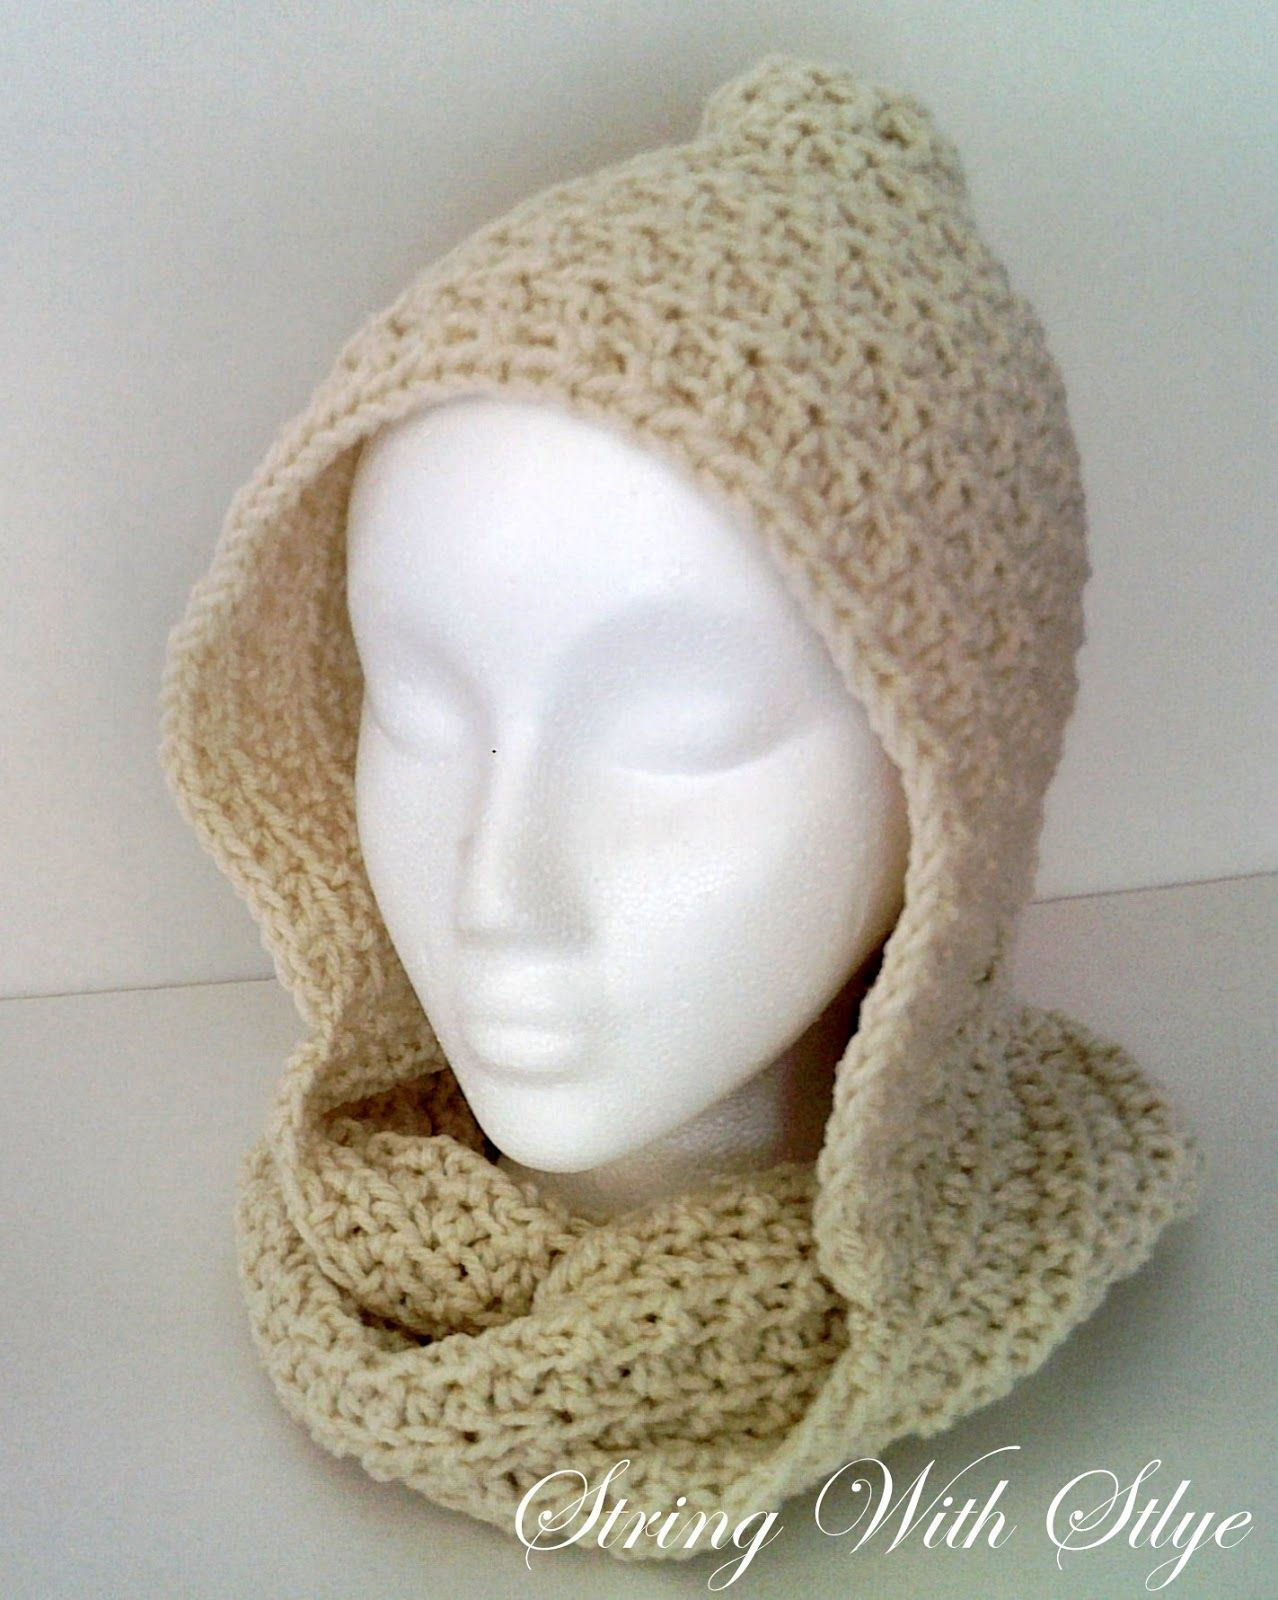 Free Crochet String With Style: Infinity Hooded Scarf Pattern - I ...